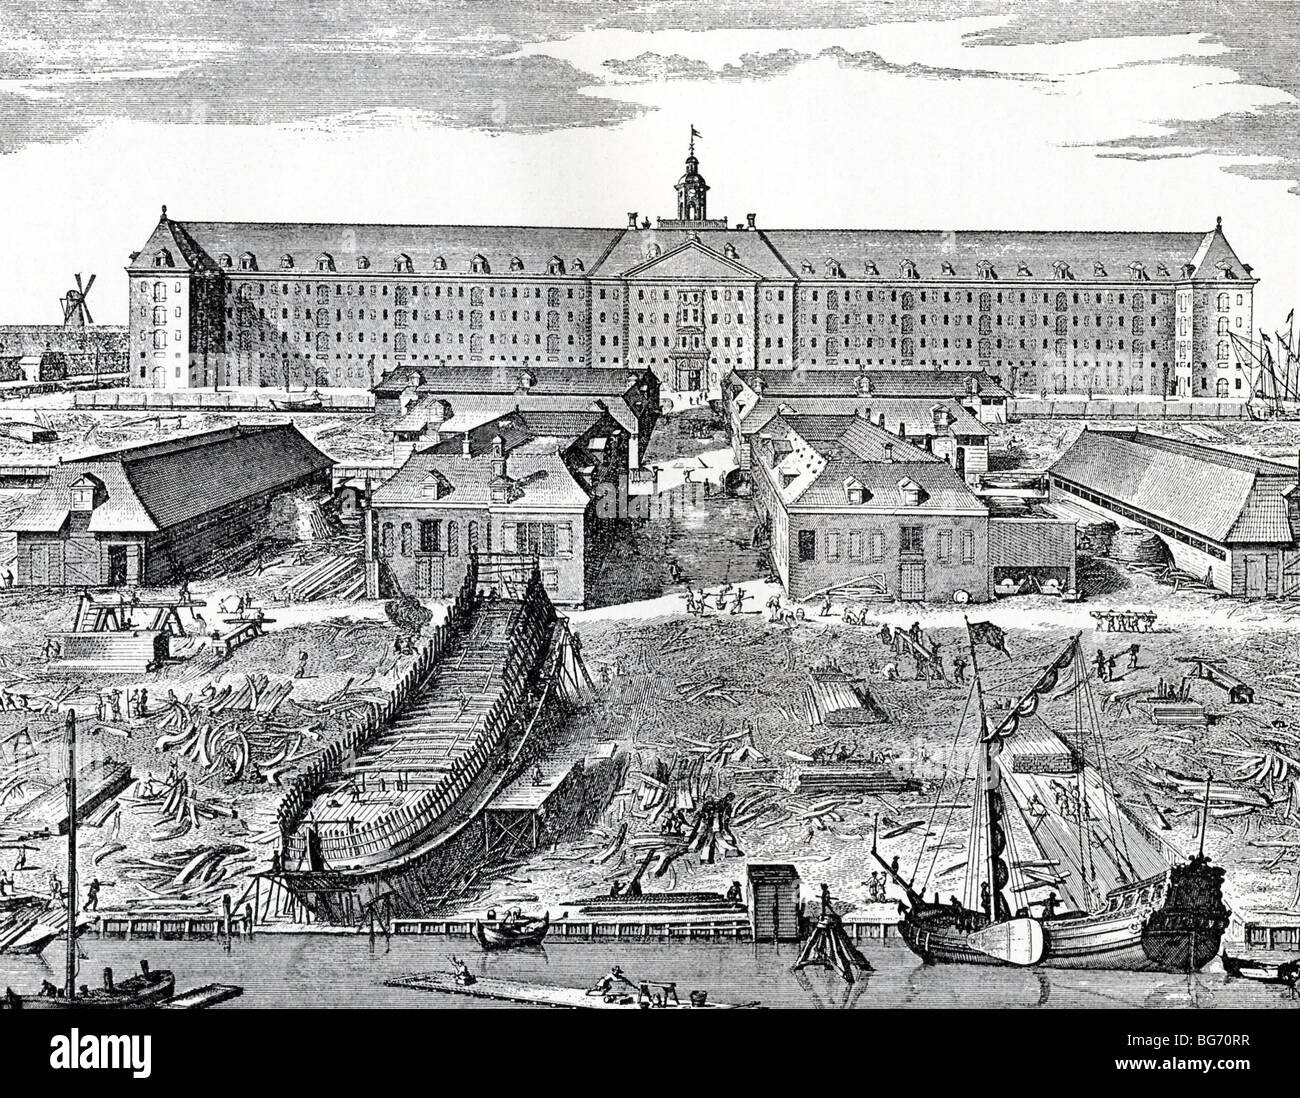 This engraving, by J. Mulder , shows a dock of the Dutch East India Company  (VOC) in Amsterdam around 1725. - Stock Image